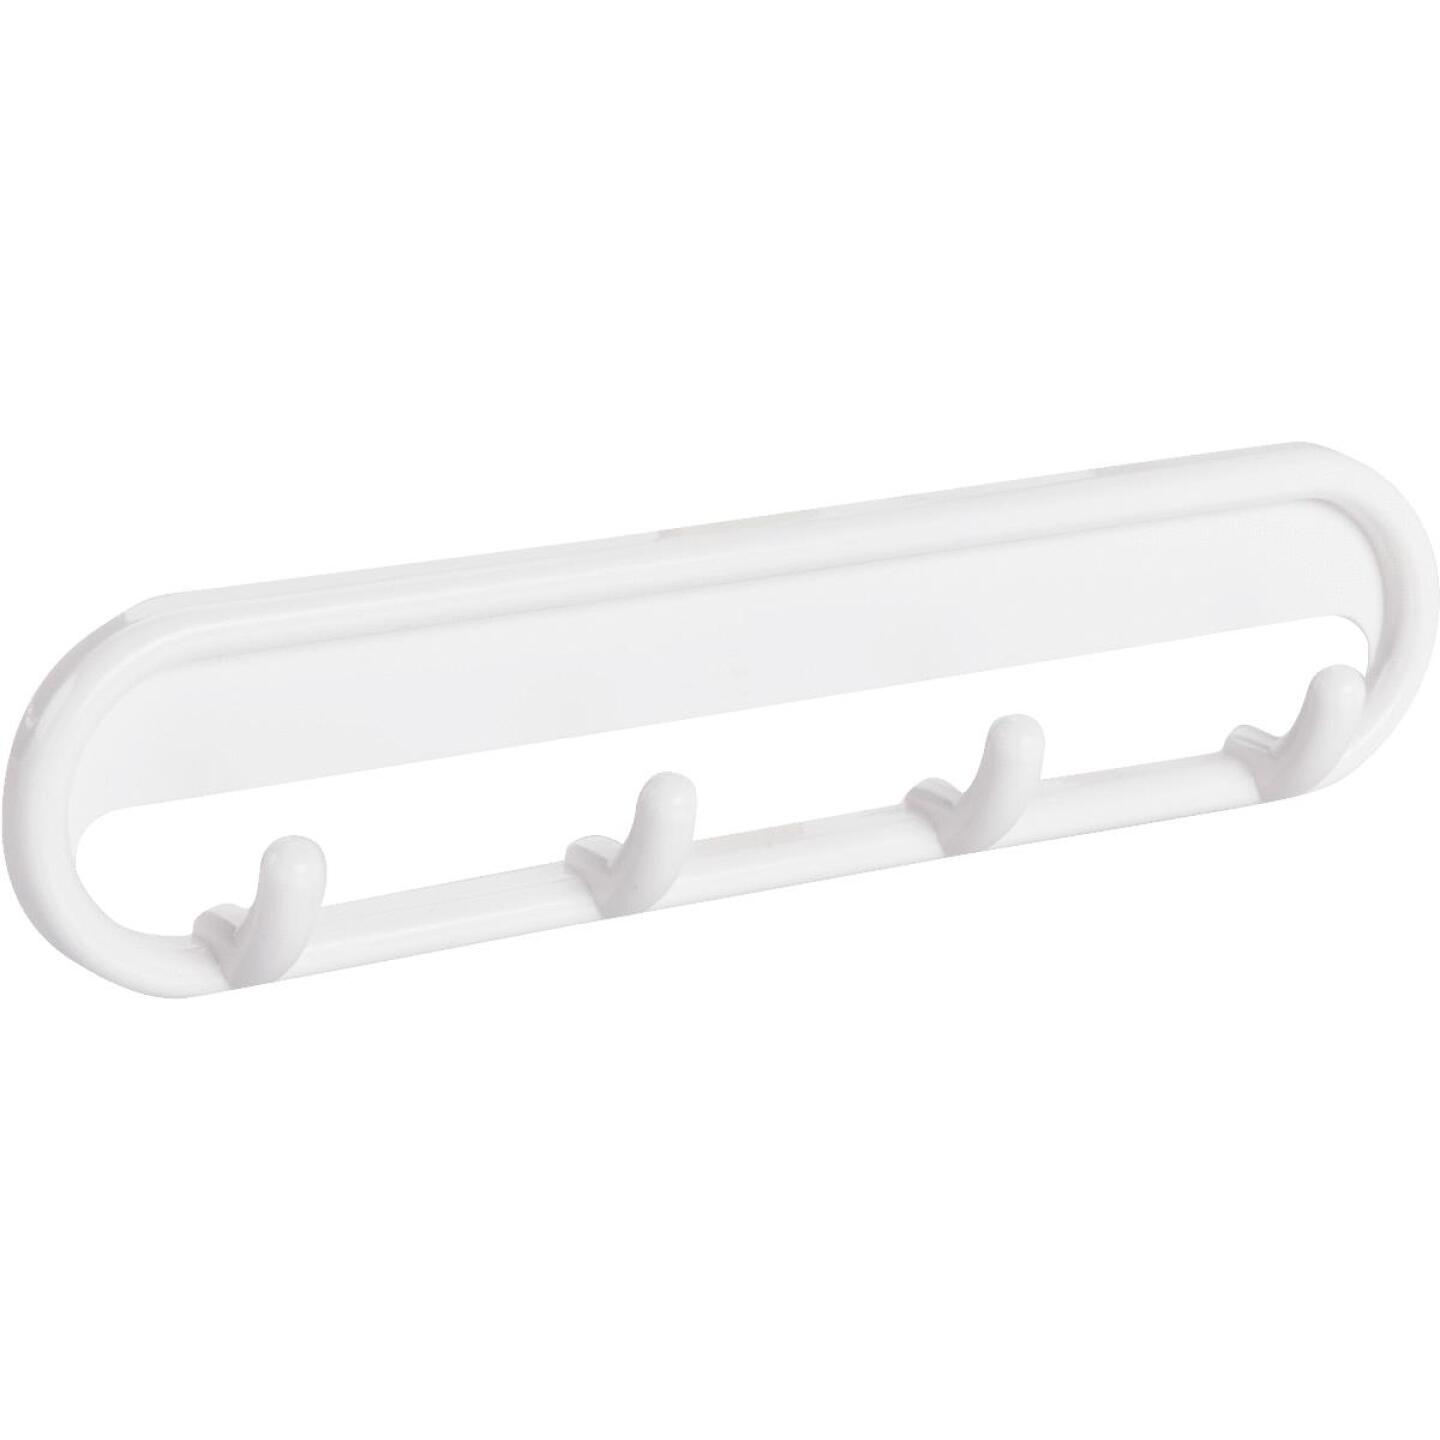 InterDesign White Multipurpose Hook Rail Image 1